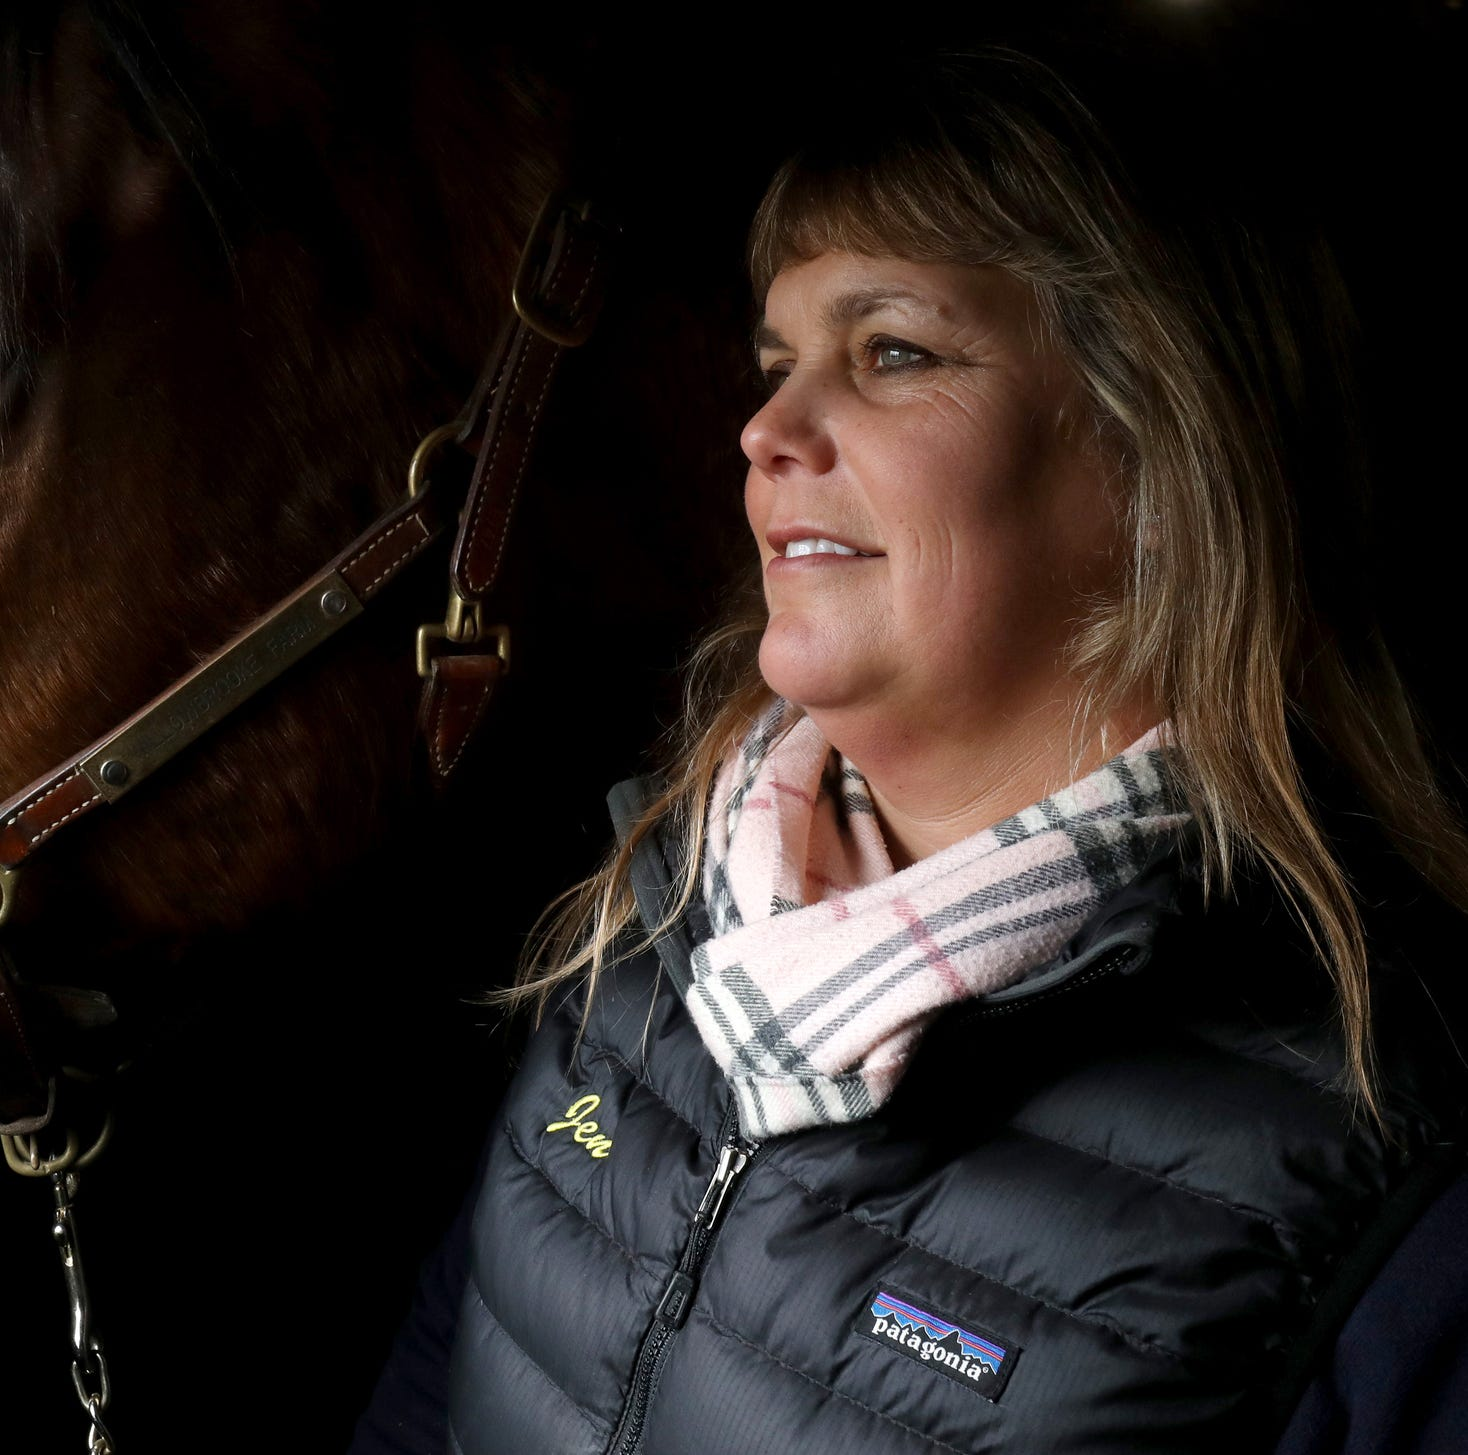 Losing racehorses get a second chance at life with Canter Michigan